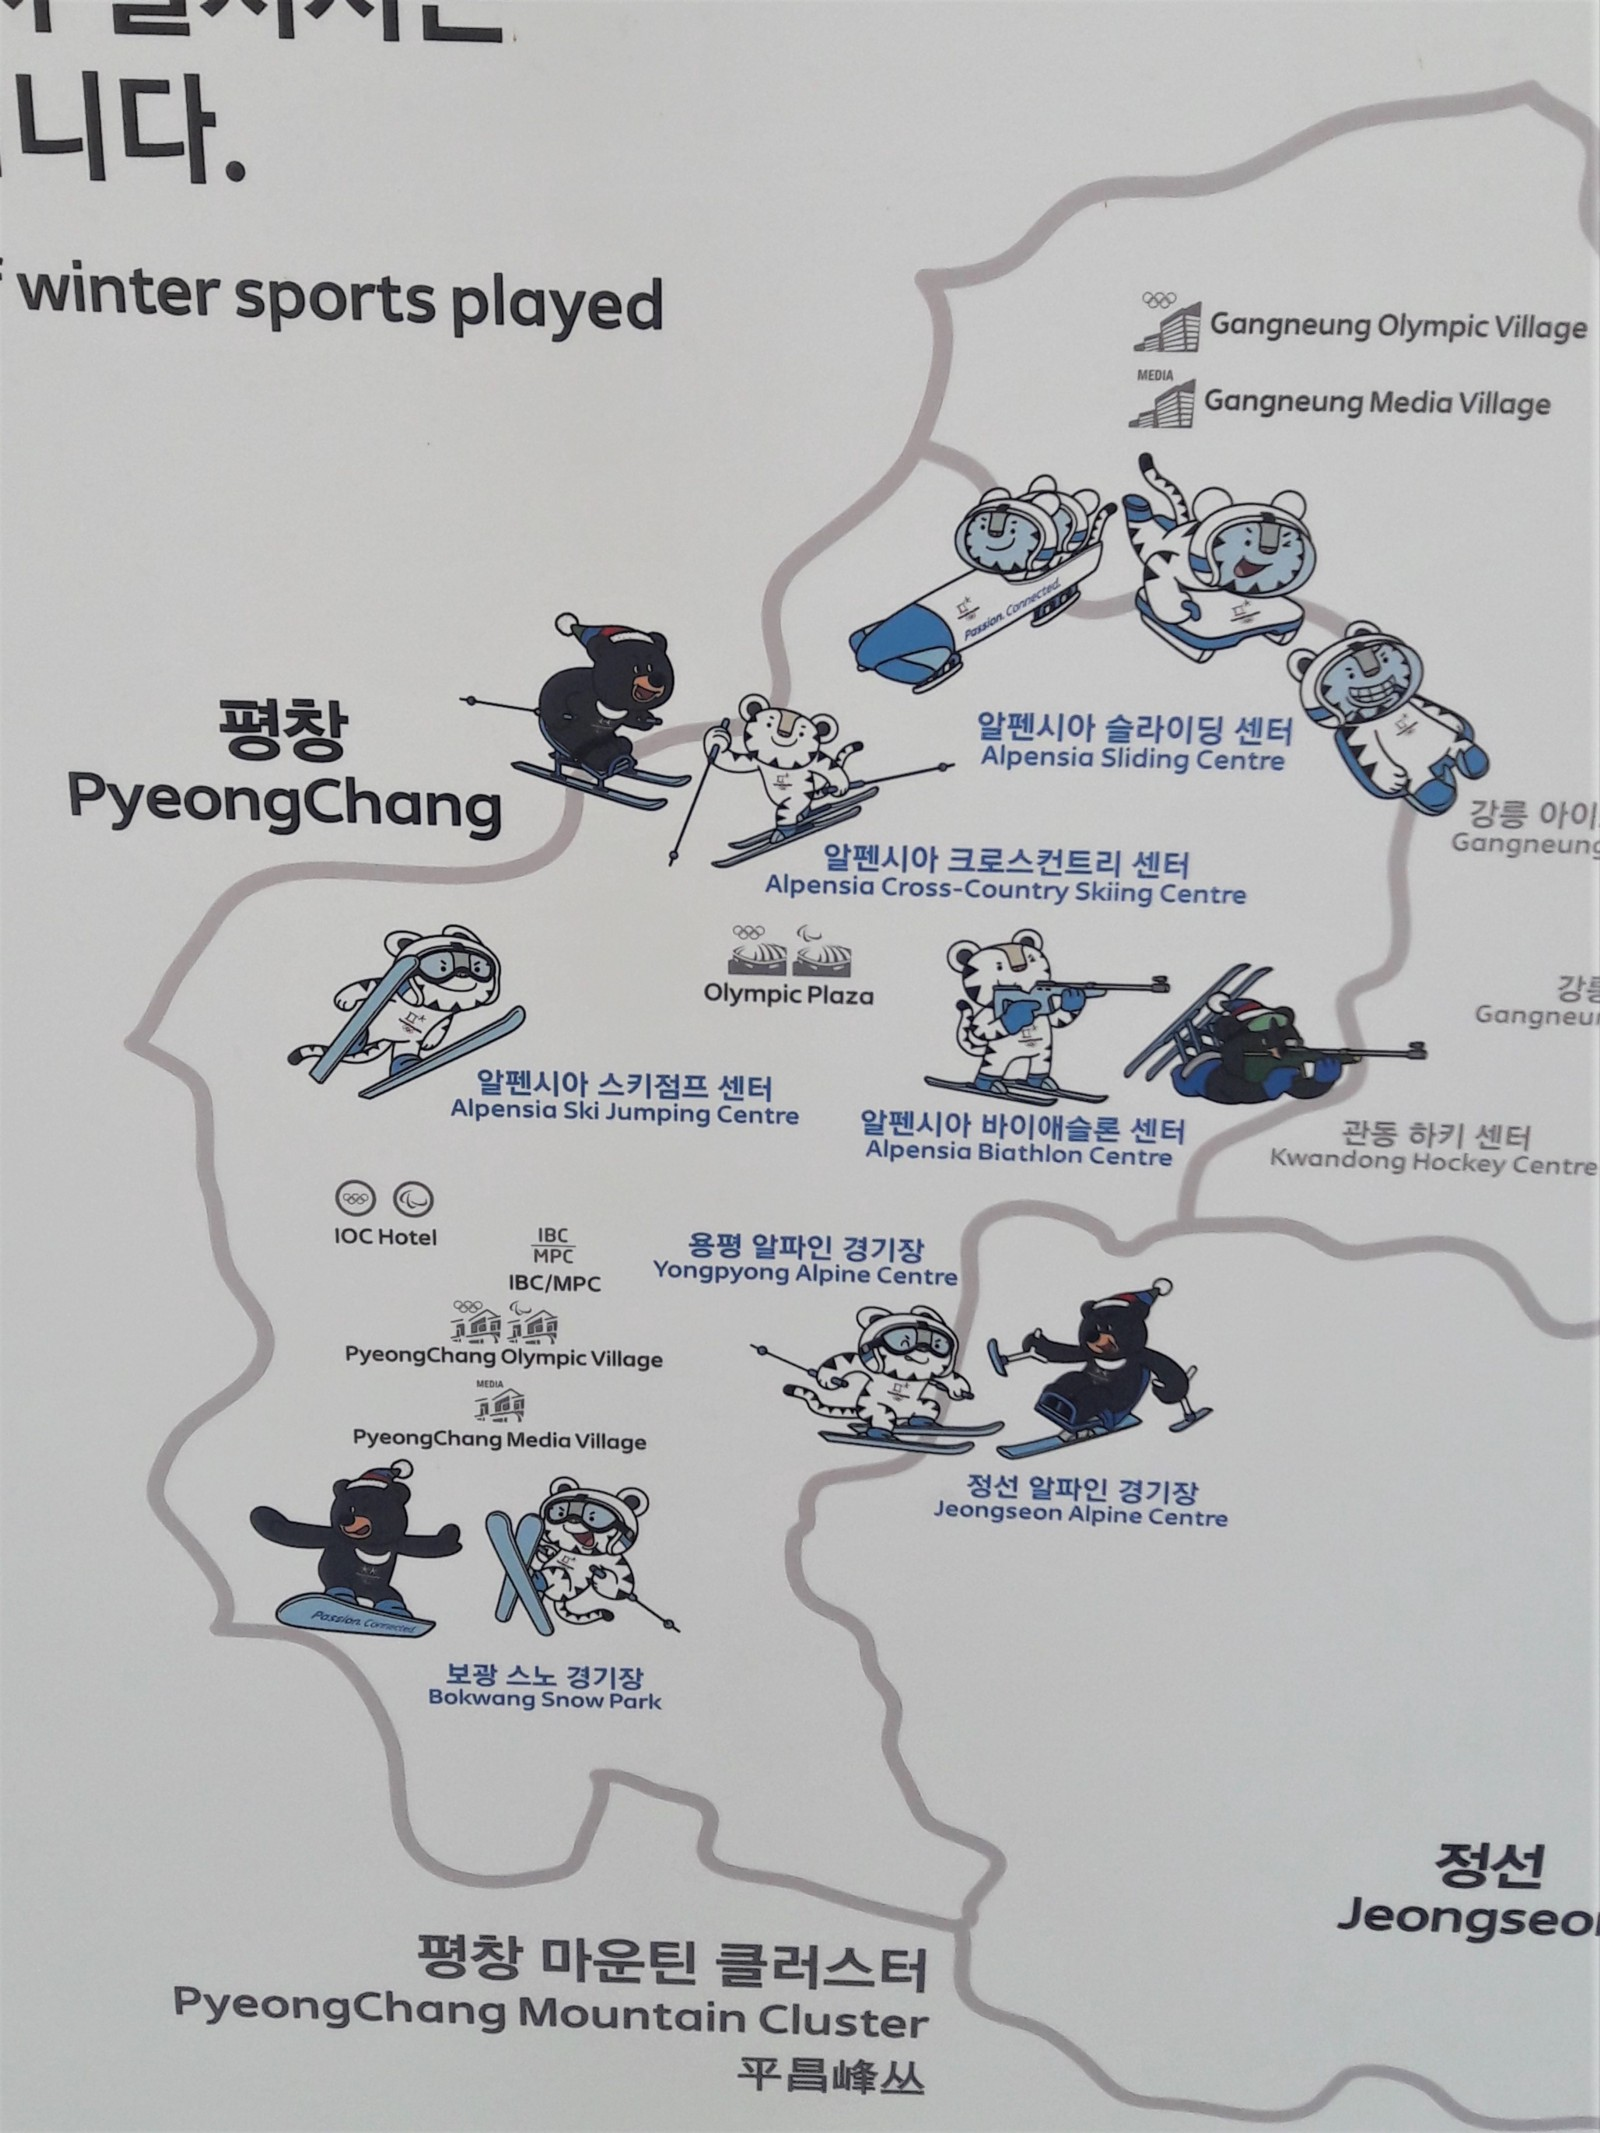 6 Things to Know Before You Hop on That Seoul to PyeongChang High